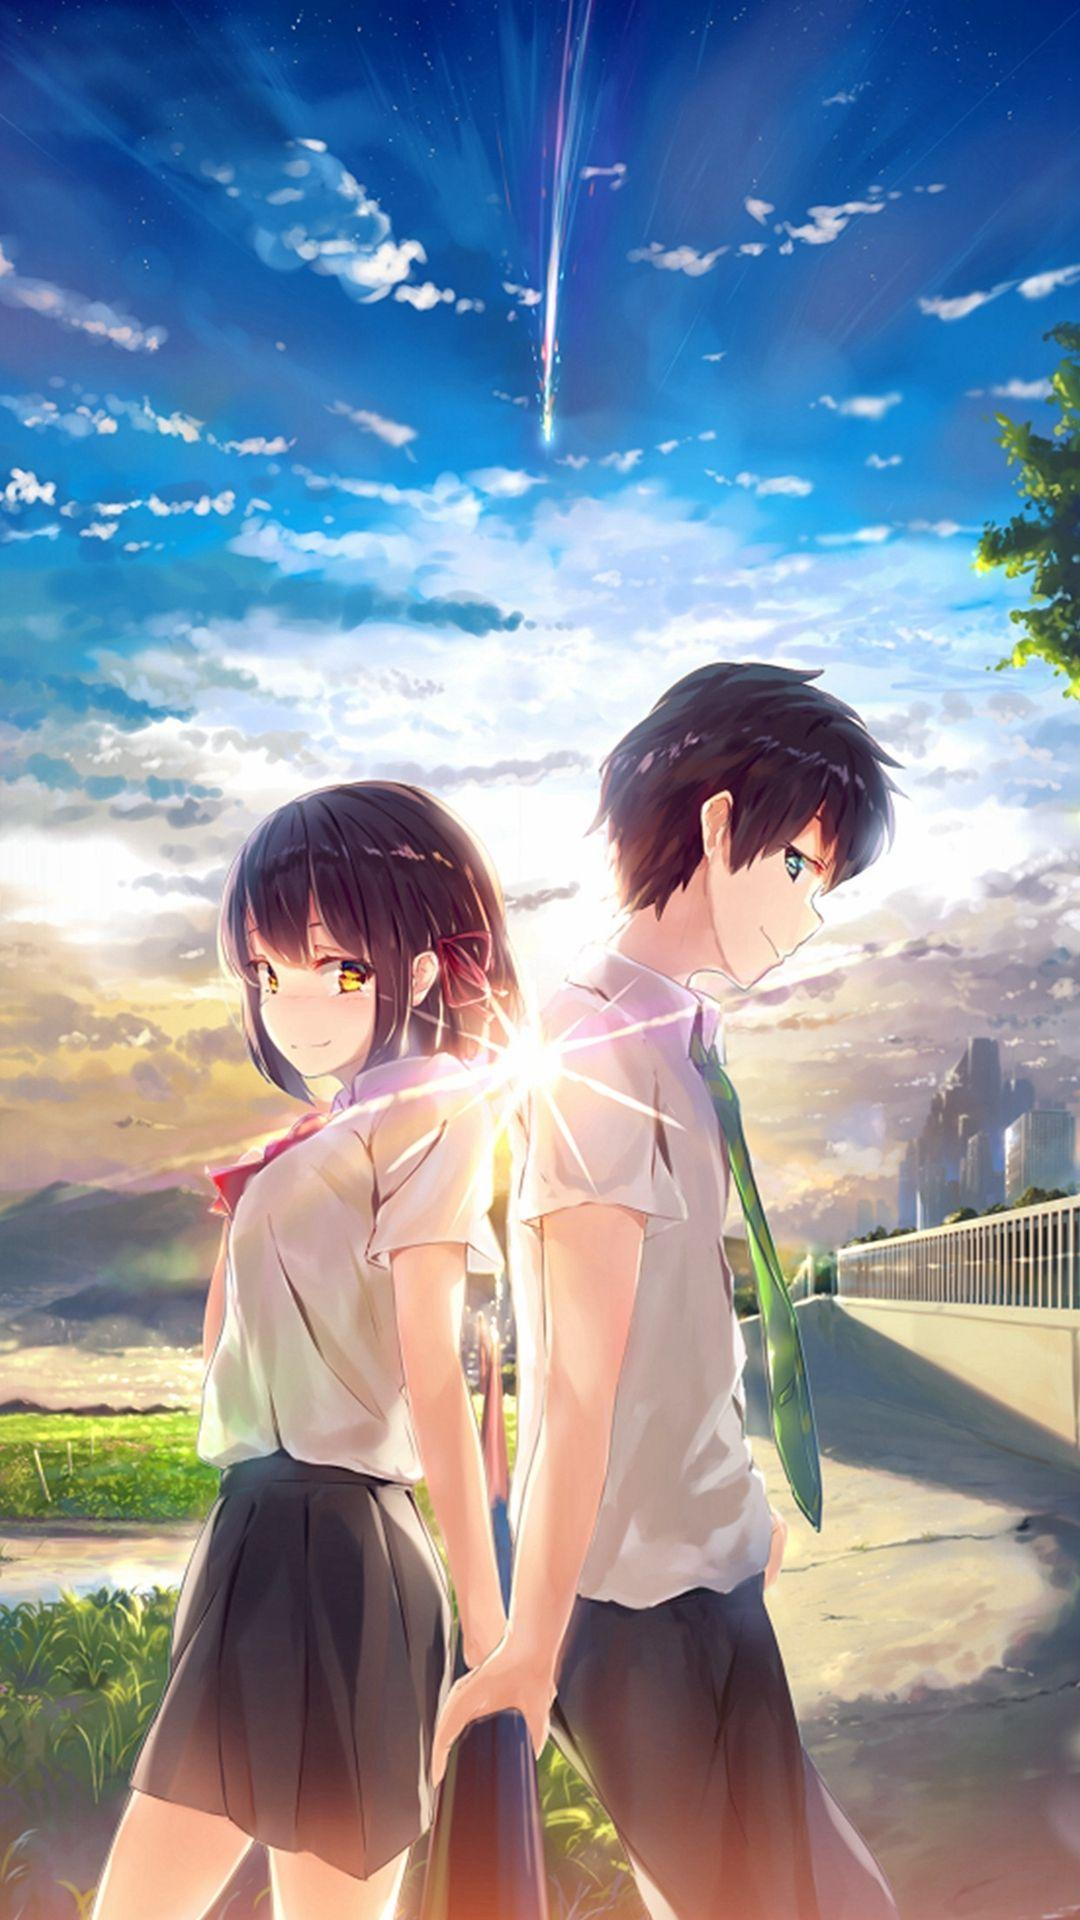 Boy And Girl Anime Cute Wallpapers - Wallpaper Cave